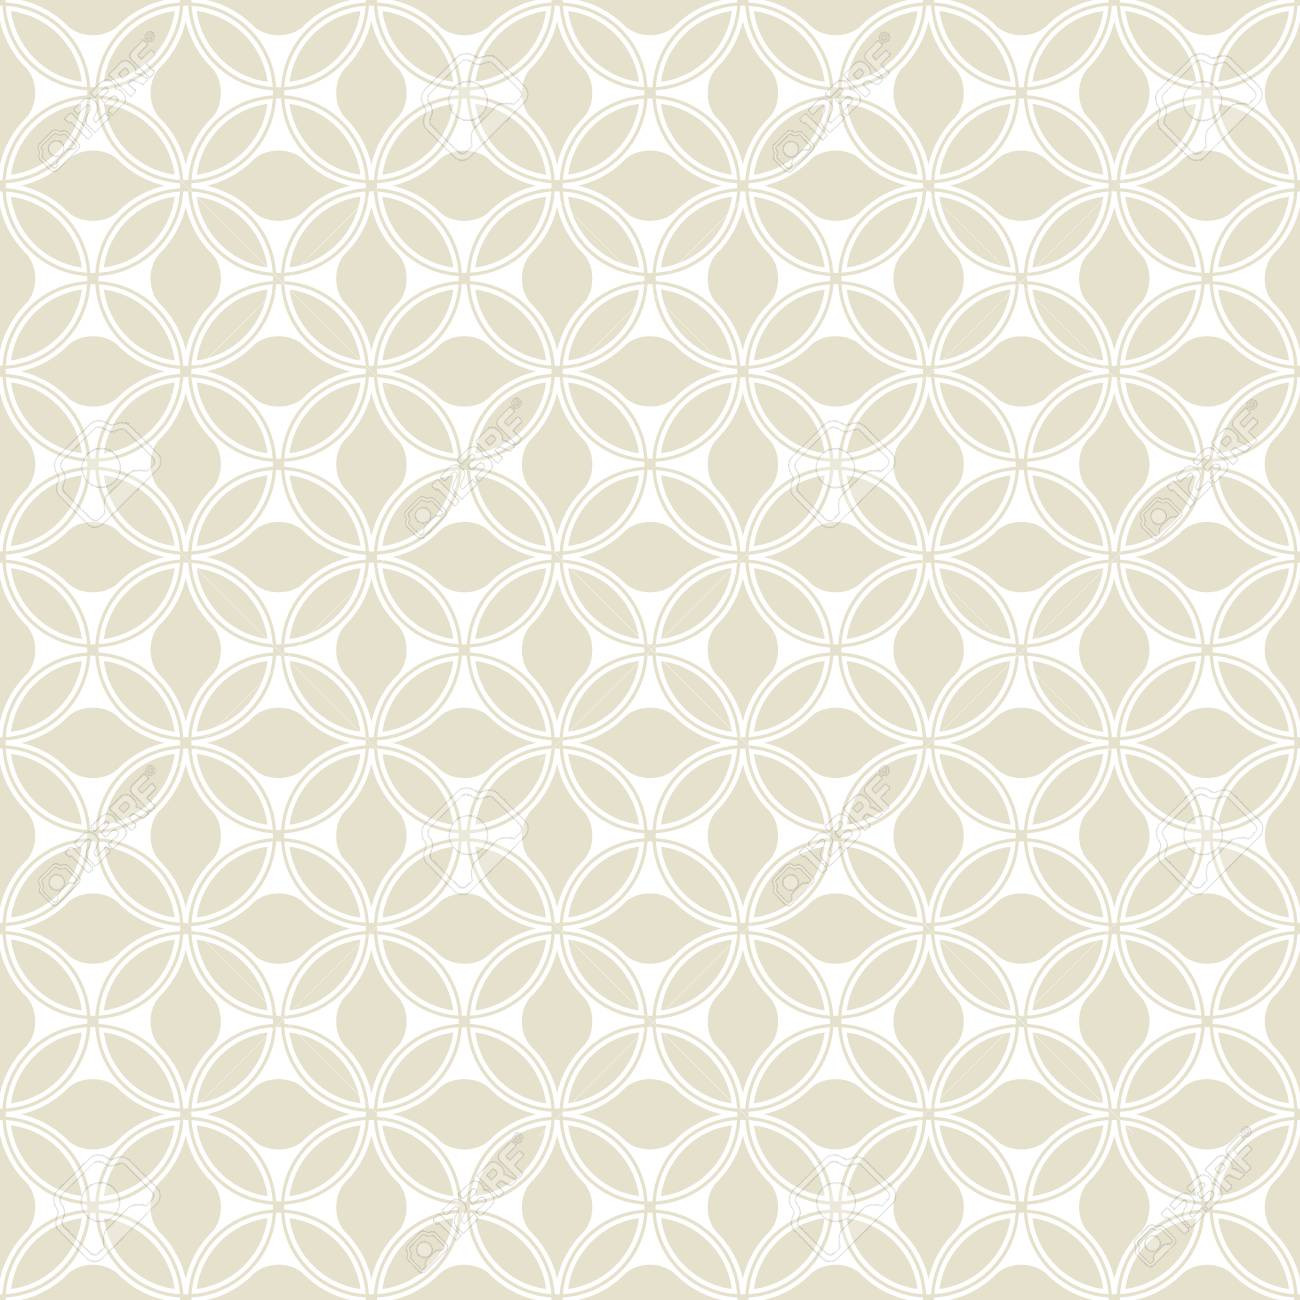 Floral Pattern Wallpaper Seamless Vector Background Beige And